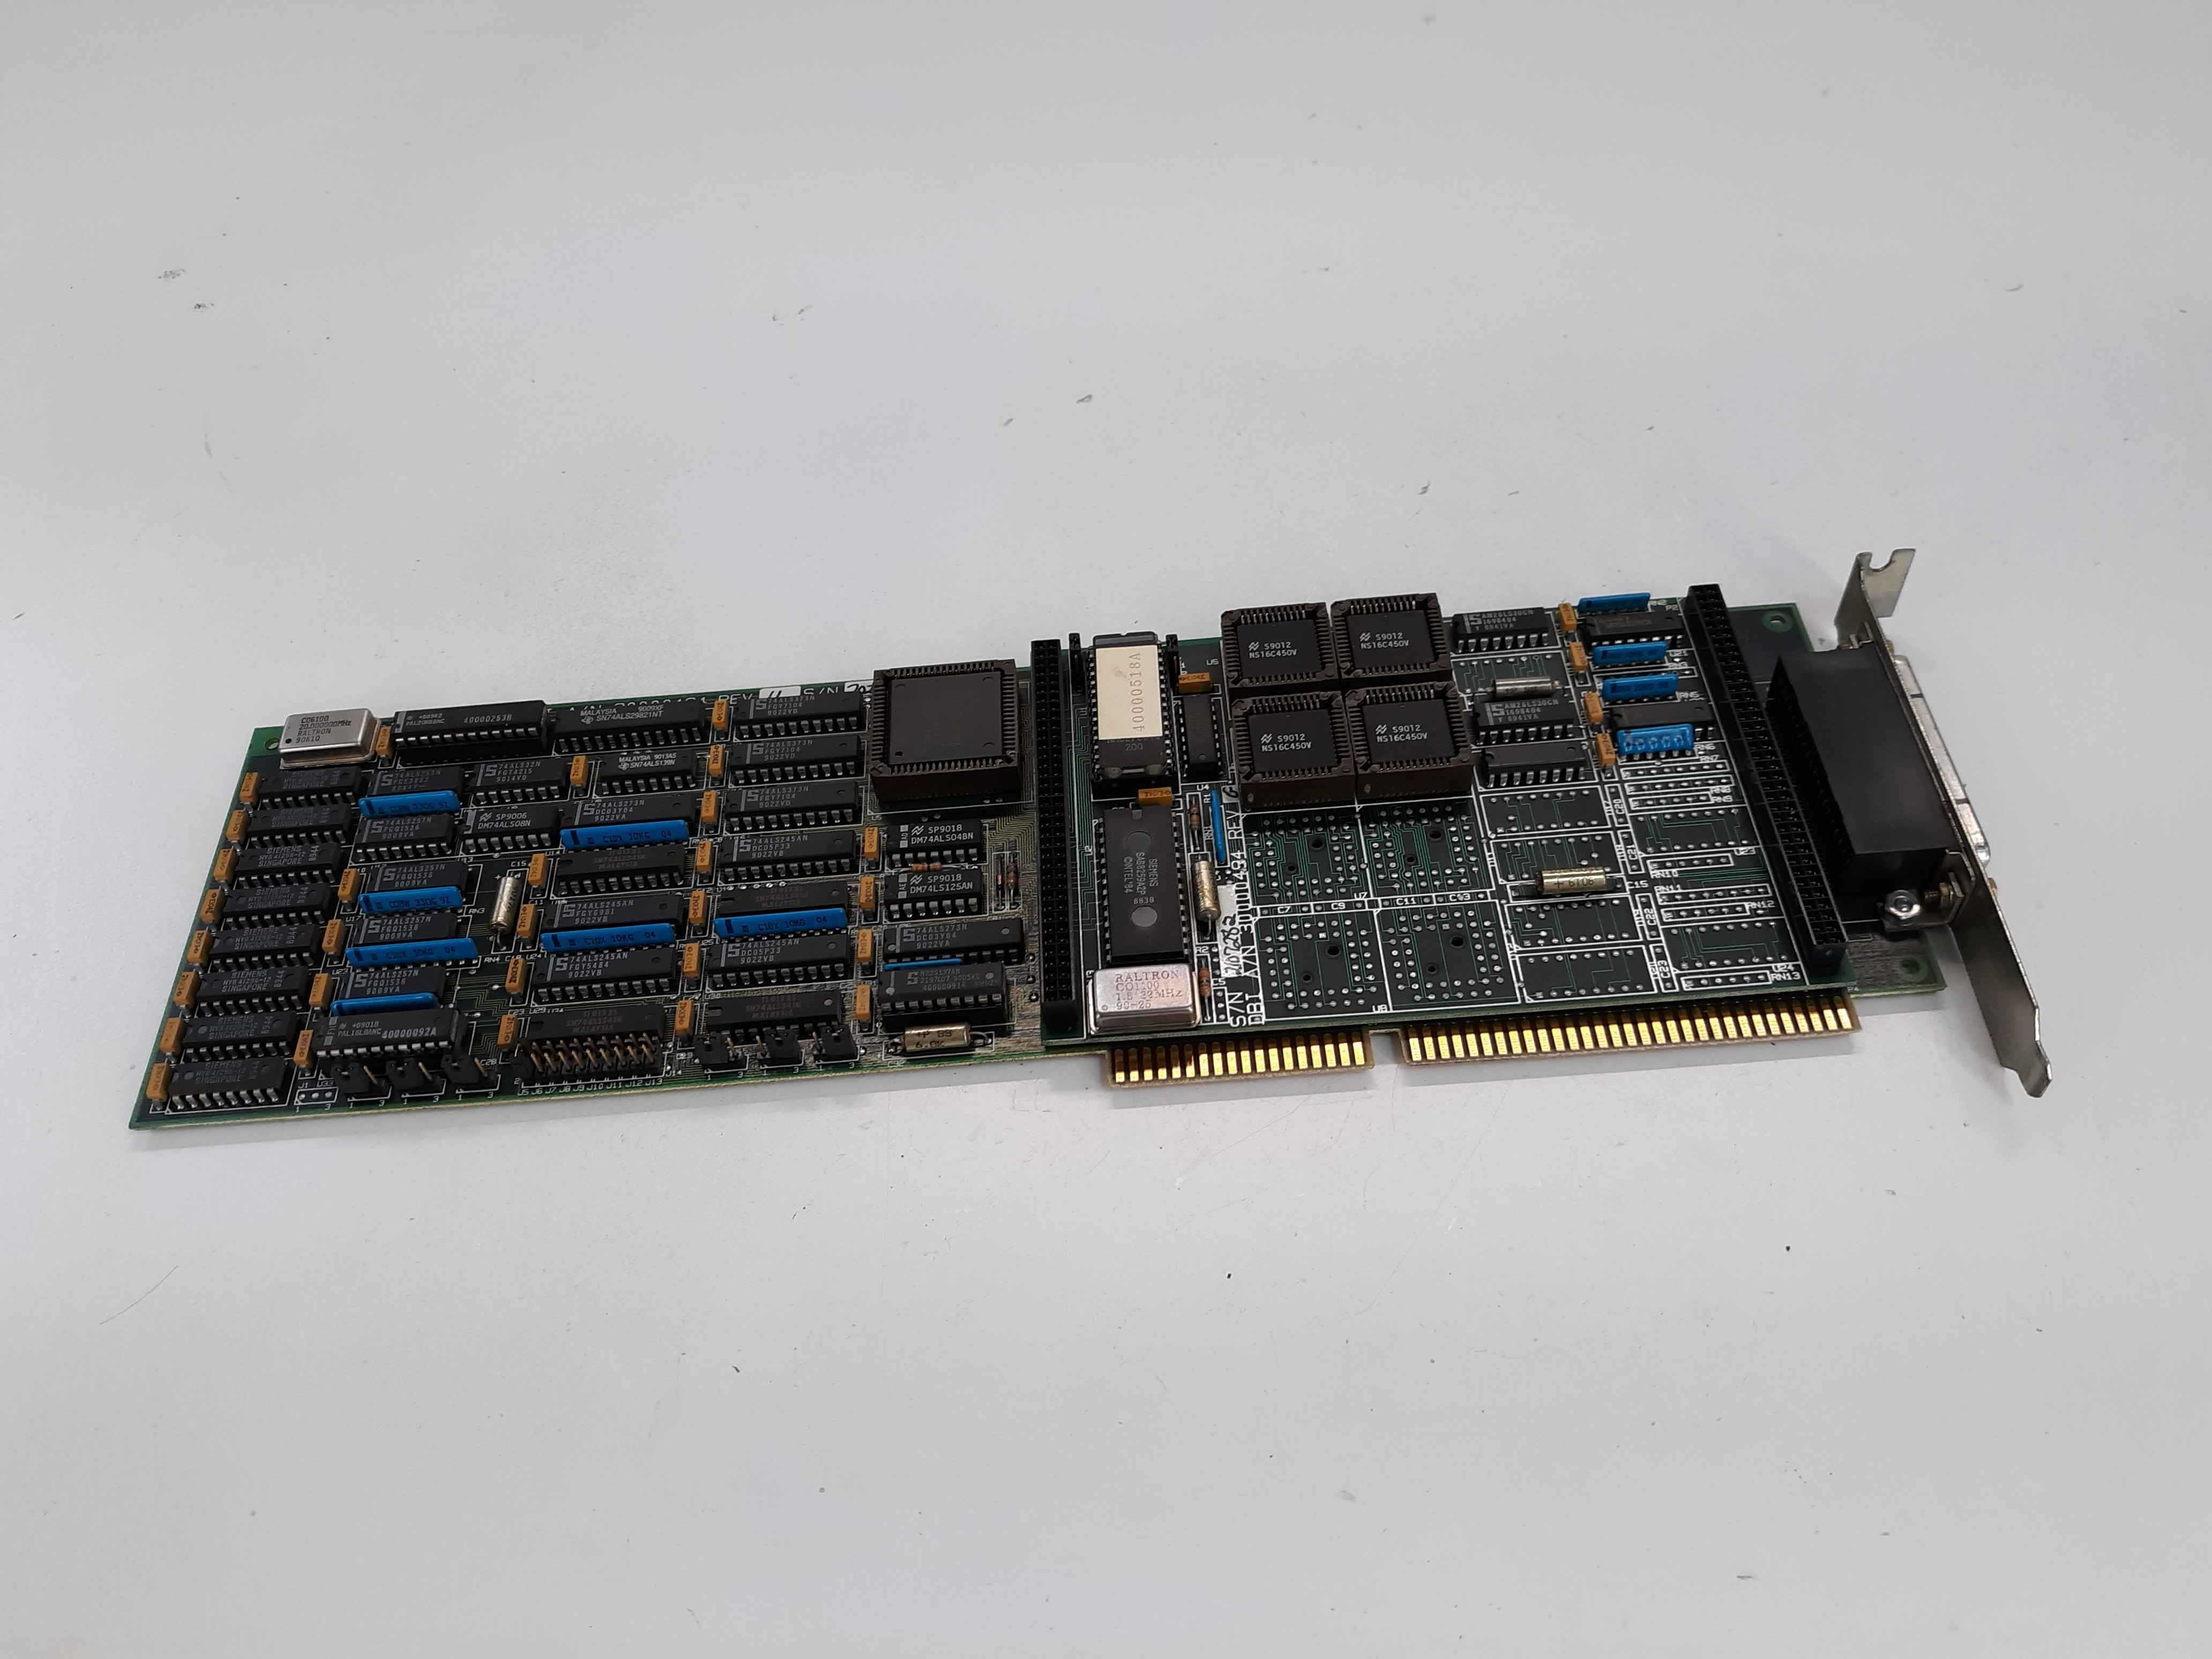 DIGIBOARD DigiChannel DBI A/N 30000464 REV.H S/N 2024653